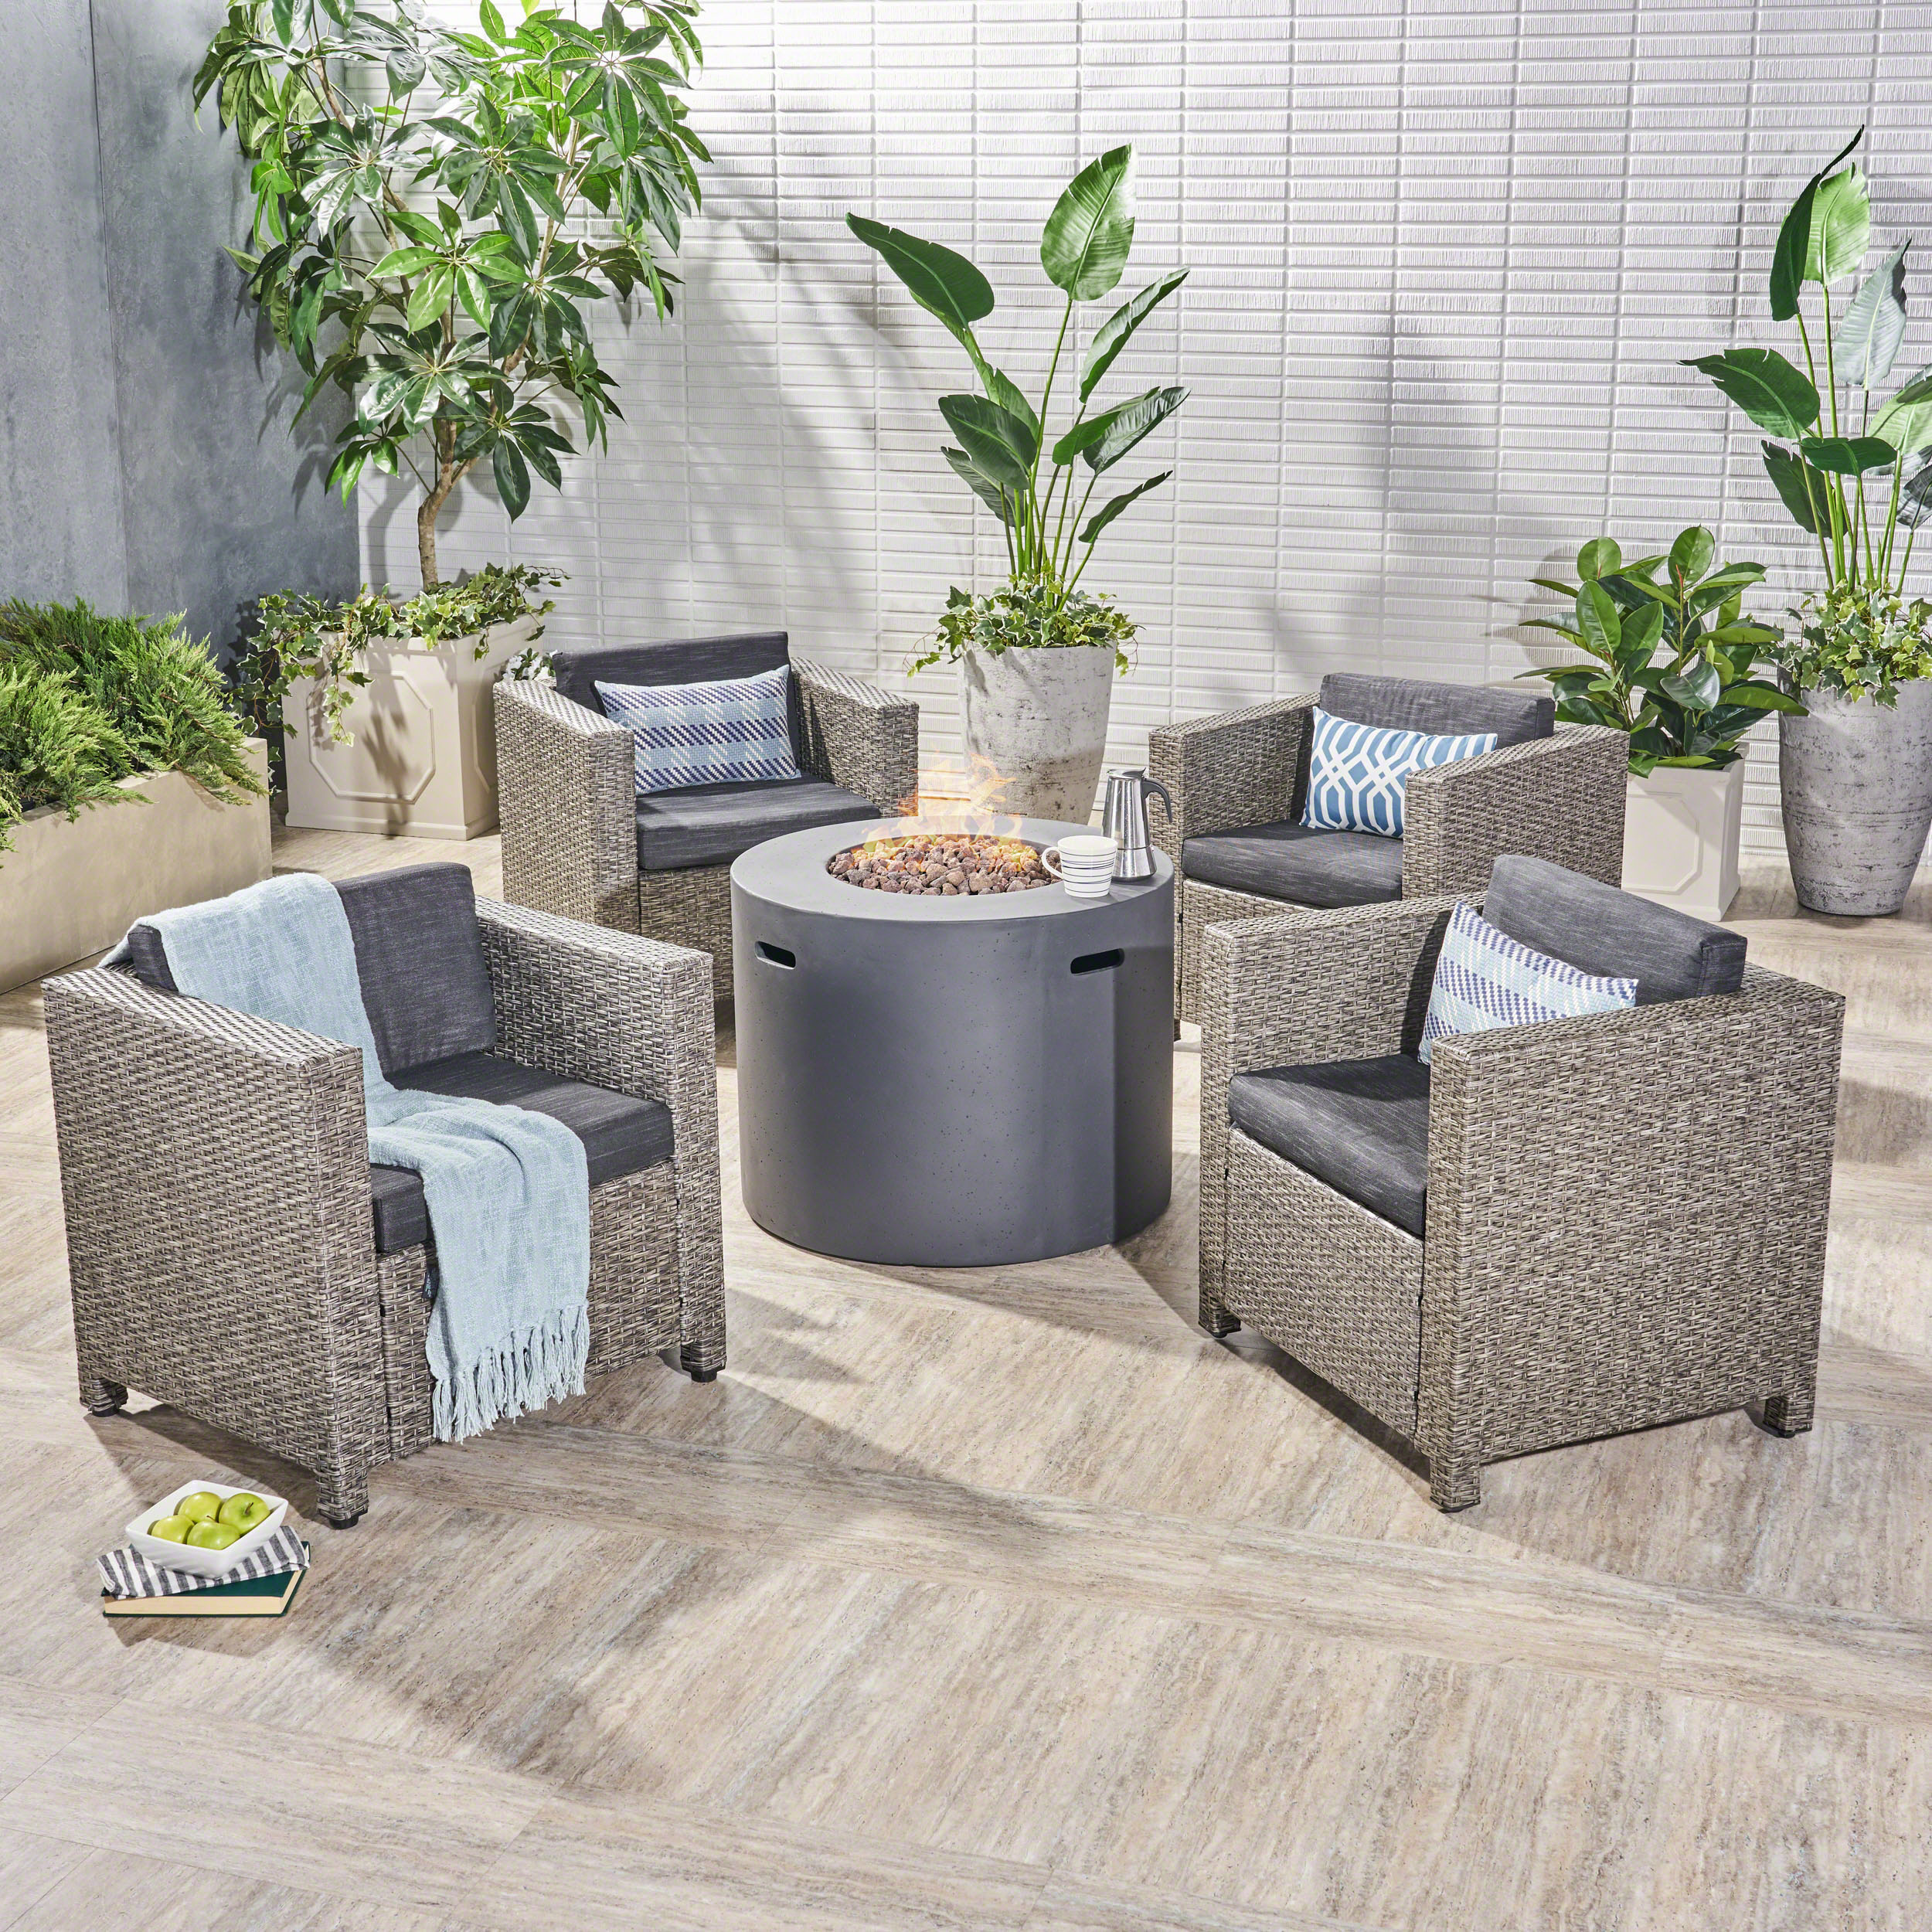 Eve Outdoor 5 Piece Wicker Club Chair Set with cushions and Round Fire Pit, Dark Brown, Beige, Light Gray